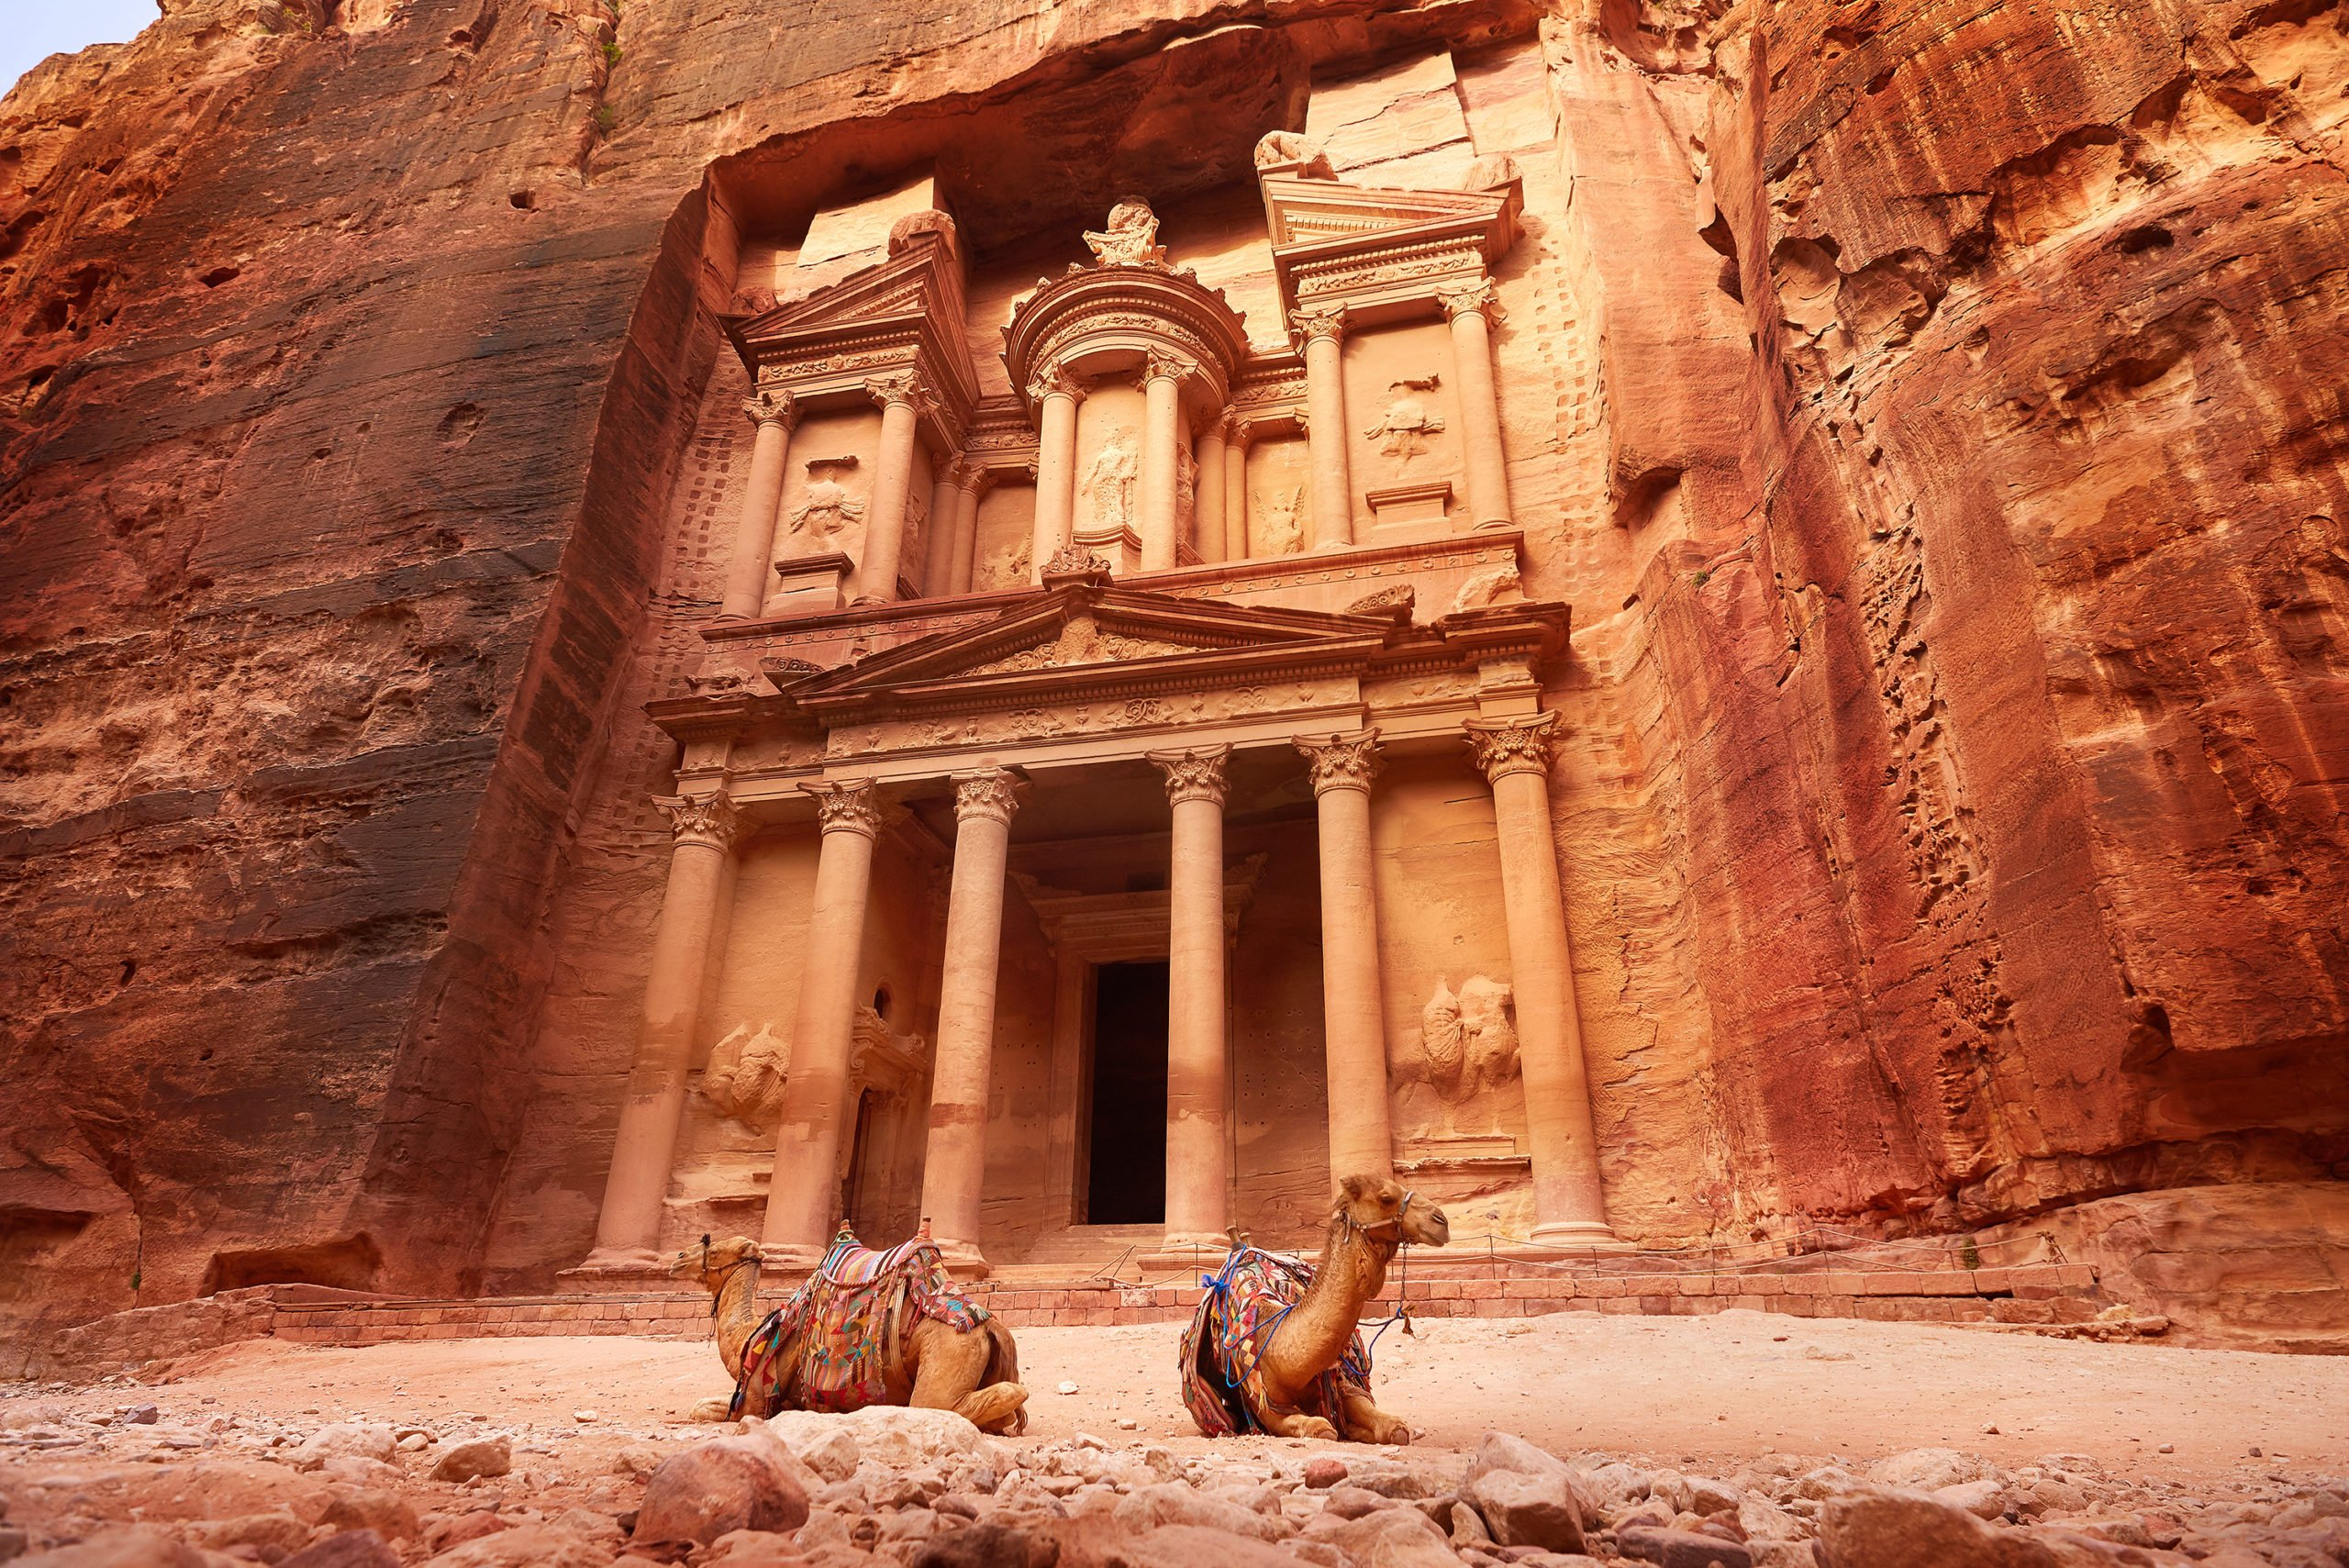 Explore The Majestic City Of Petra On The 13 Day Highlights Of Israel, Saudi Arabia & Jordan Package Tour